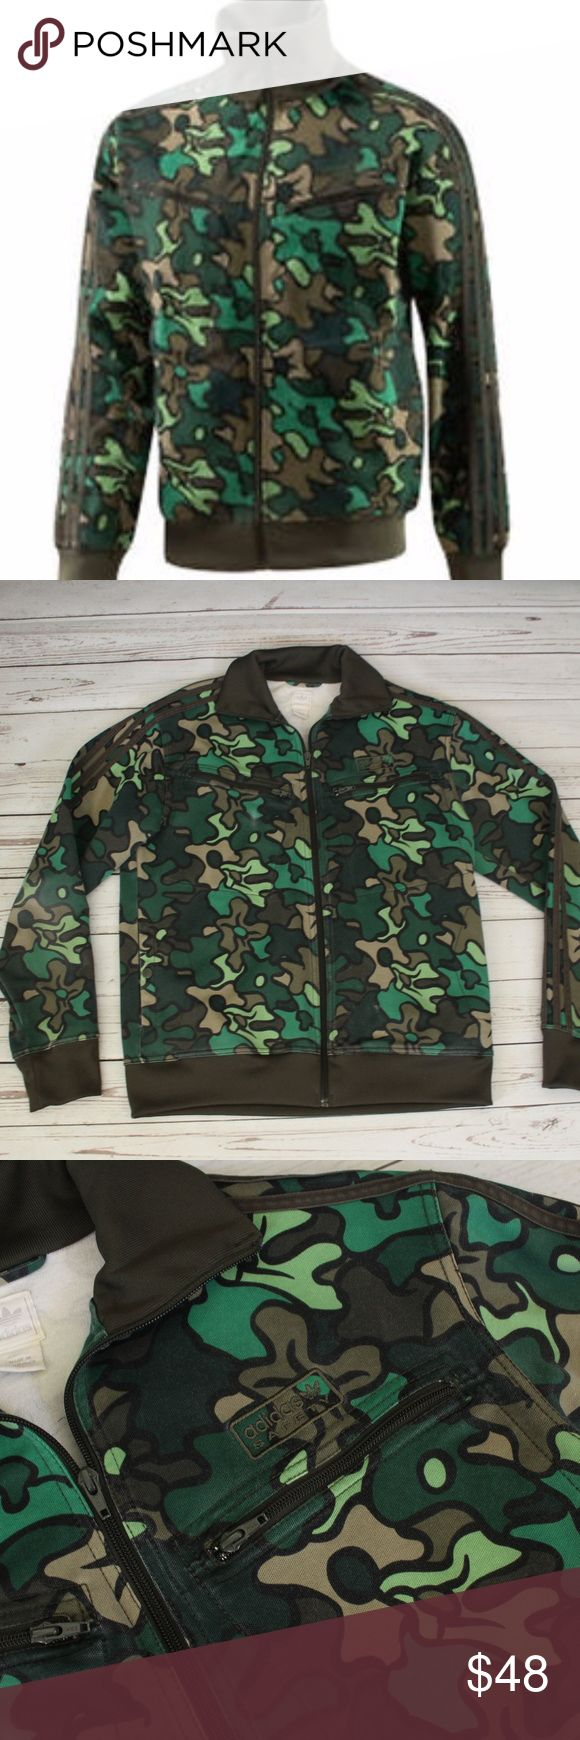 "Adidas Safety Camo Track Jacket Awesome Camo Jacket Some Fading, Please see last pictures. 2 Front Chest Zipper Pockets 2 Side Snap Button Pockets 21"" Chest 26"" Length adidas Jackets & Coats Bomber & Varsity"